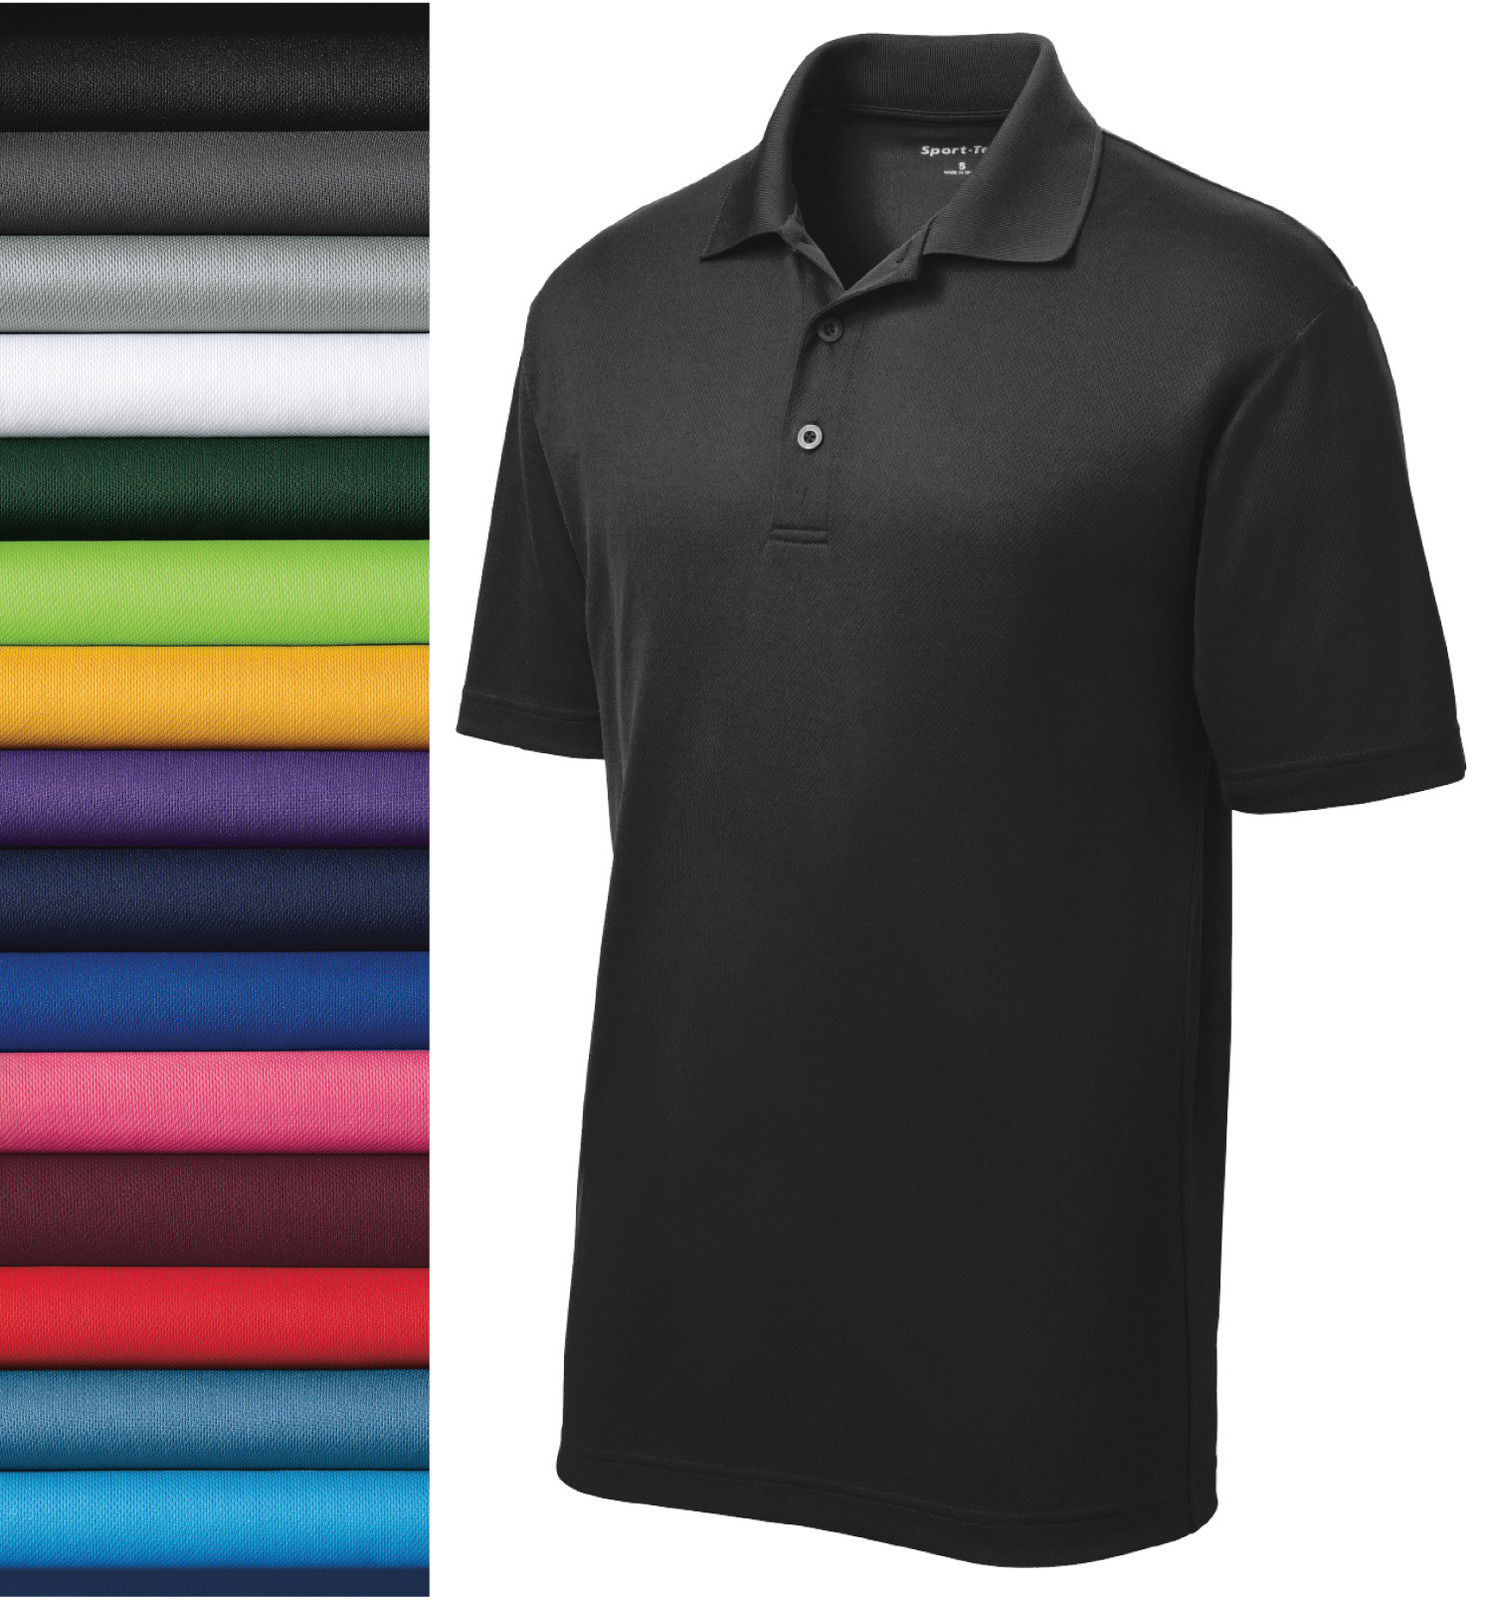 NEW Sport-Tek CASUAL GOLF DRY FIT SPORT SHIRT Polo ST640 XS -2XL 100% POLYESTER